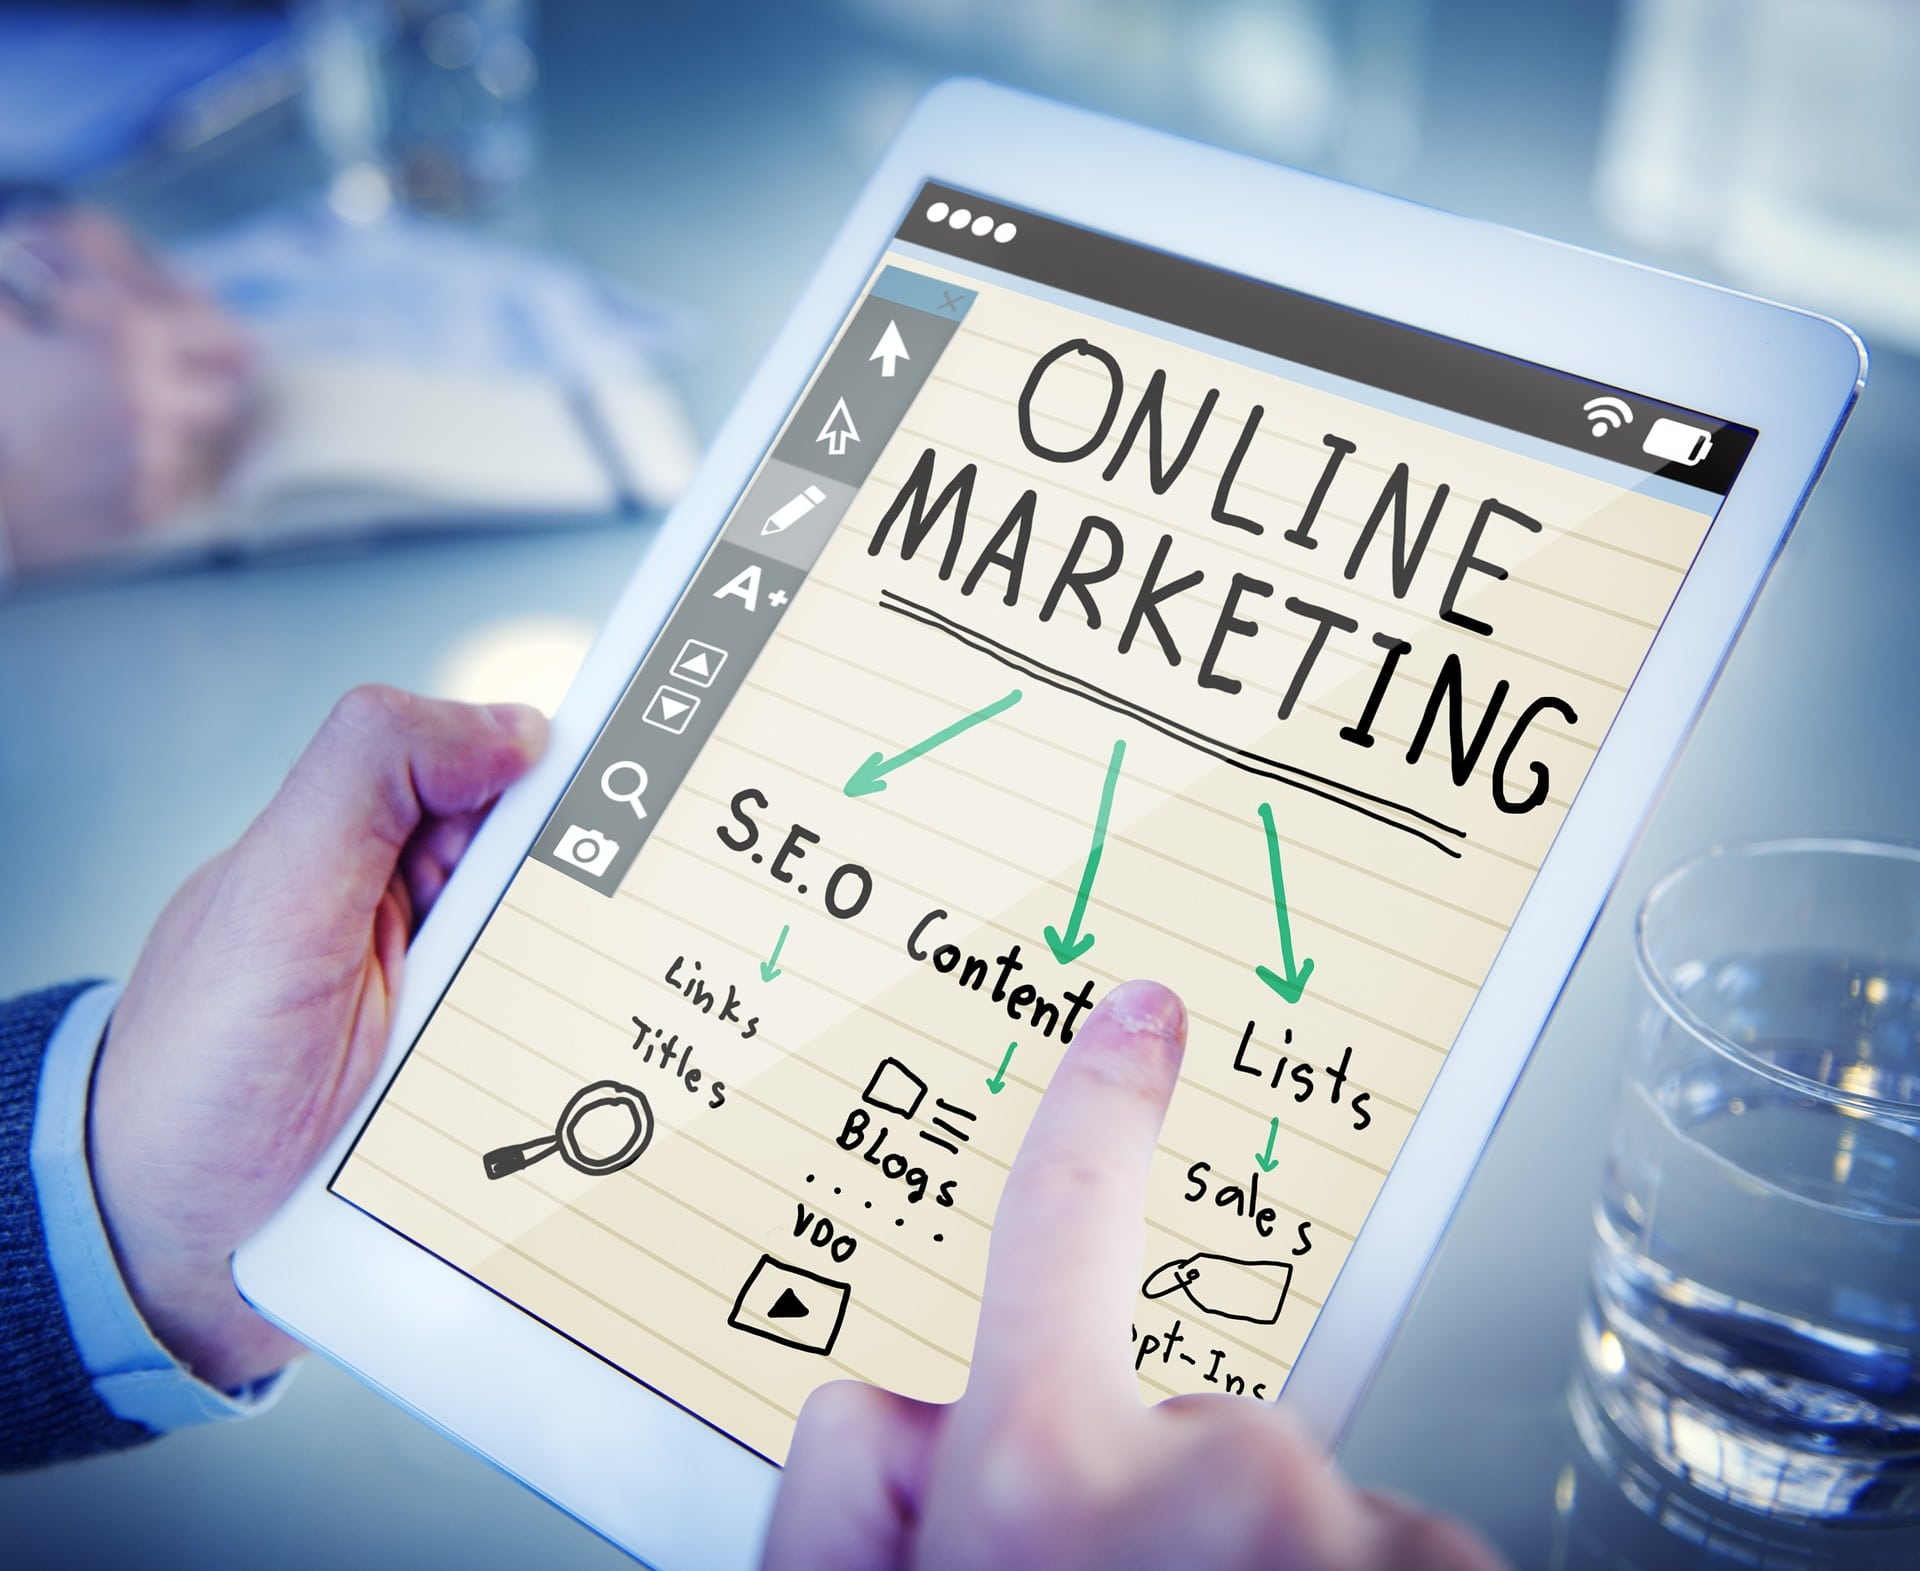 online marketing strategy on tablet